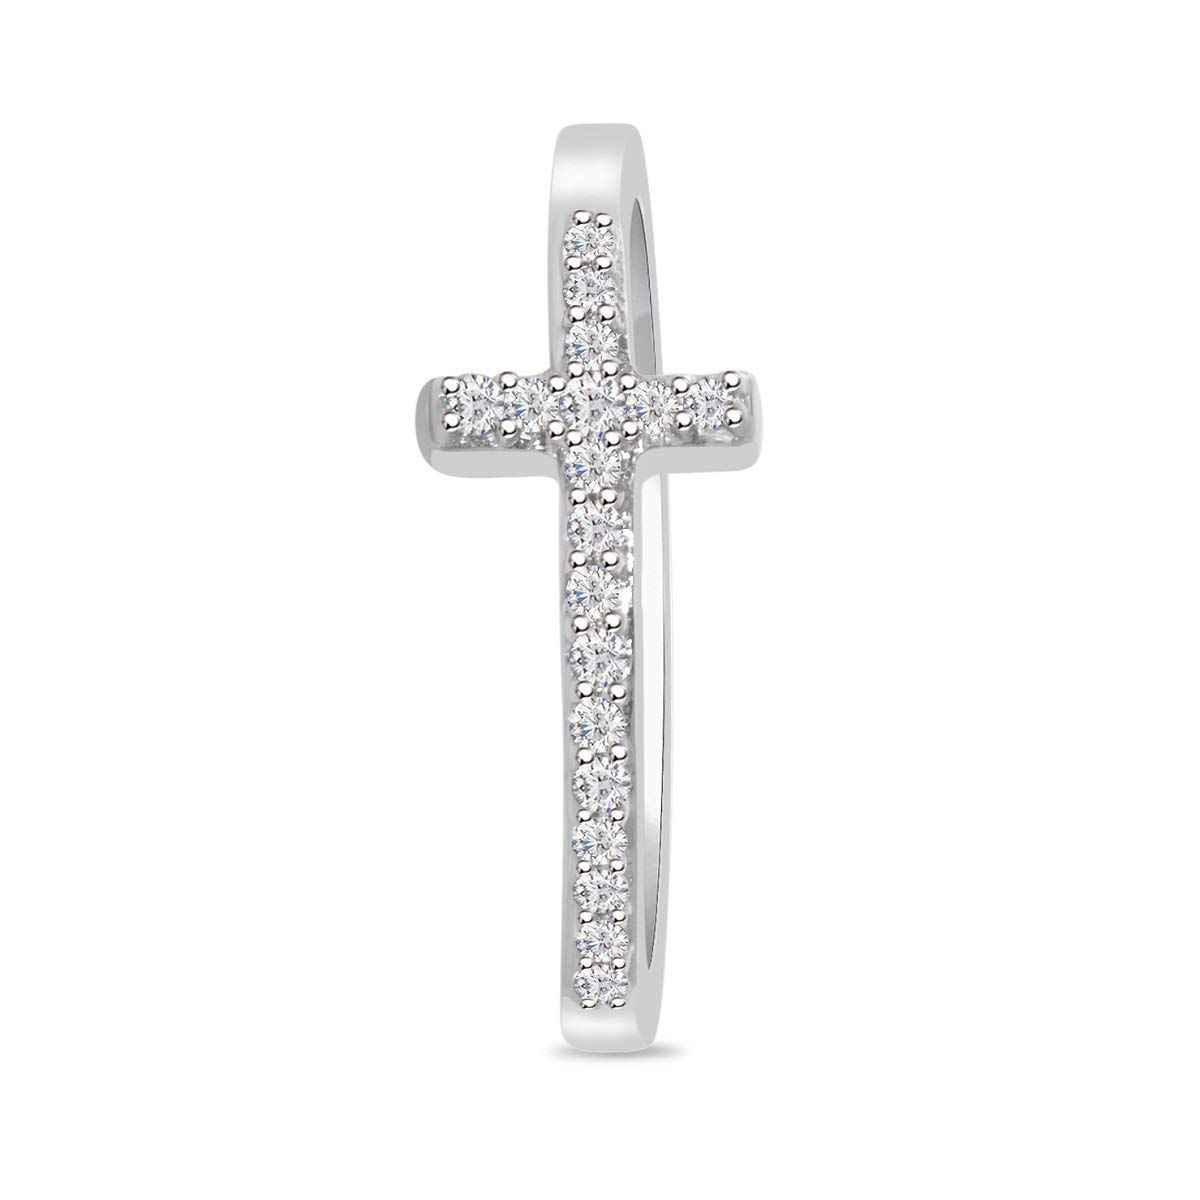 DiscountHouse4you 14k Gold Over Simulated Diamond Sideway Cross Pendant Necklace for Women Ladies